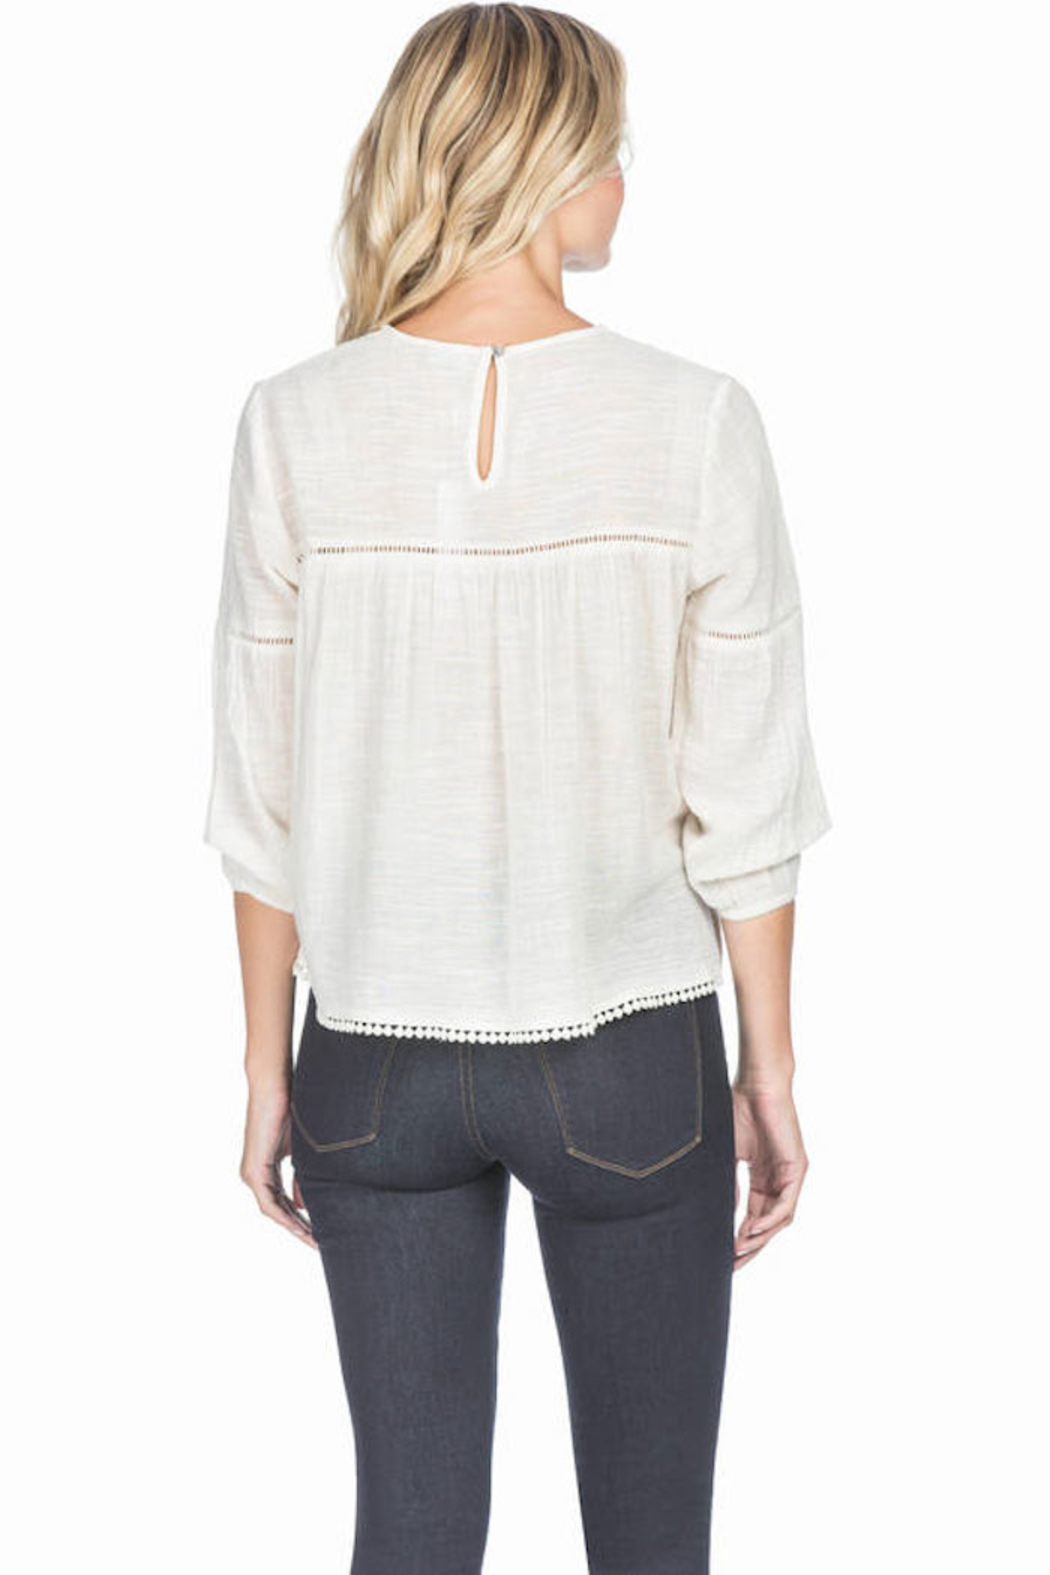 Lilla P Shirred Seam Blouse - Back Cropped Image